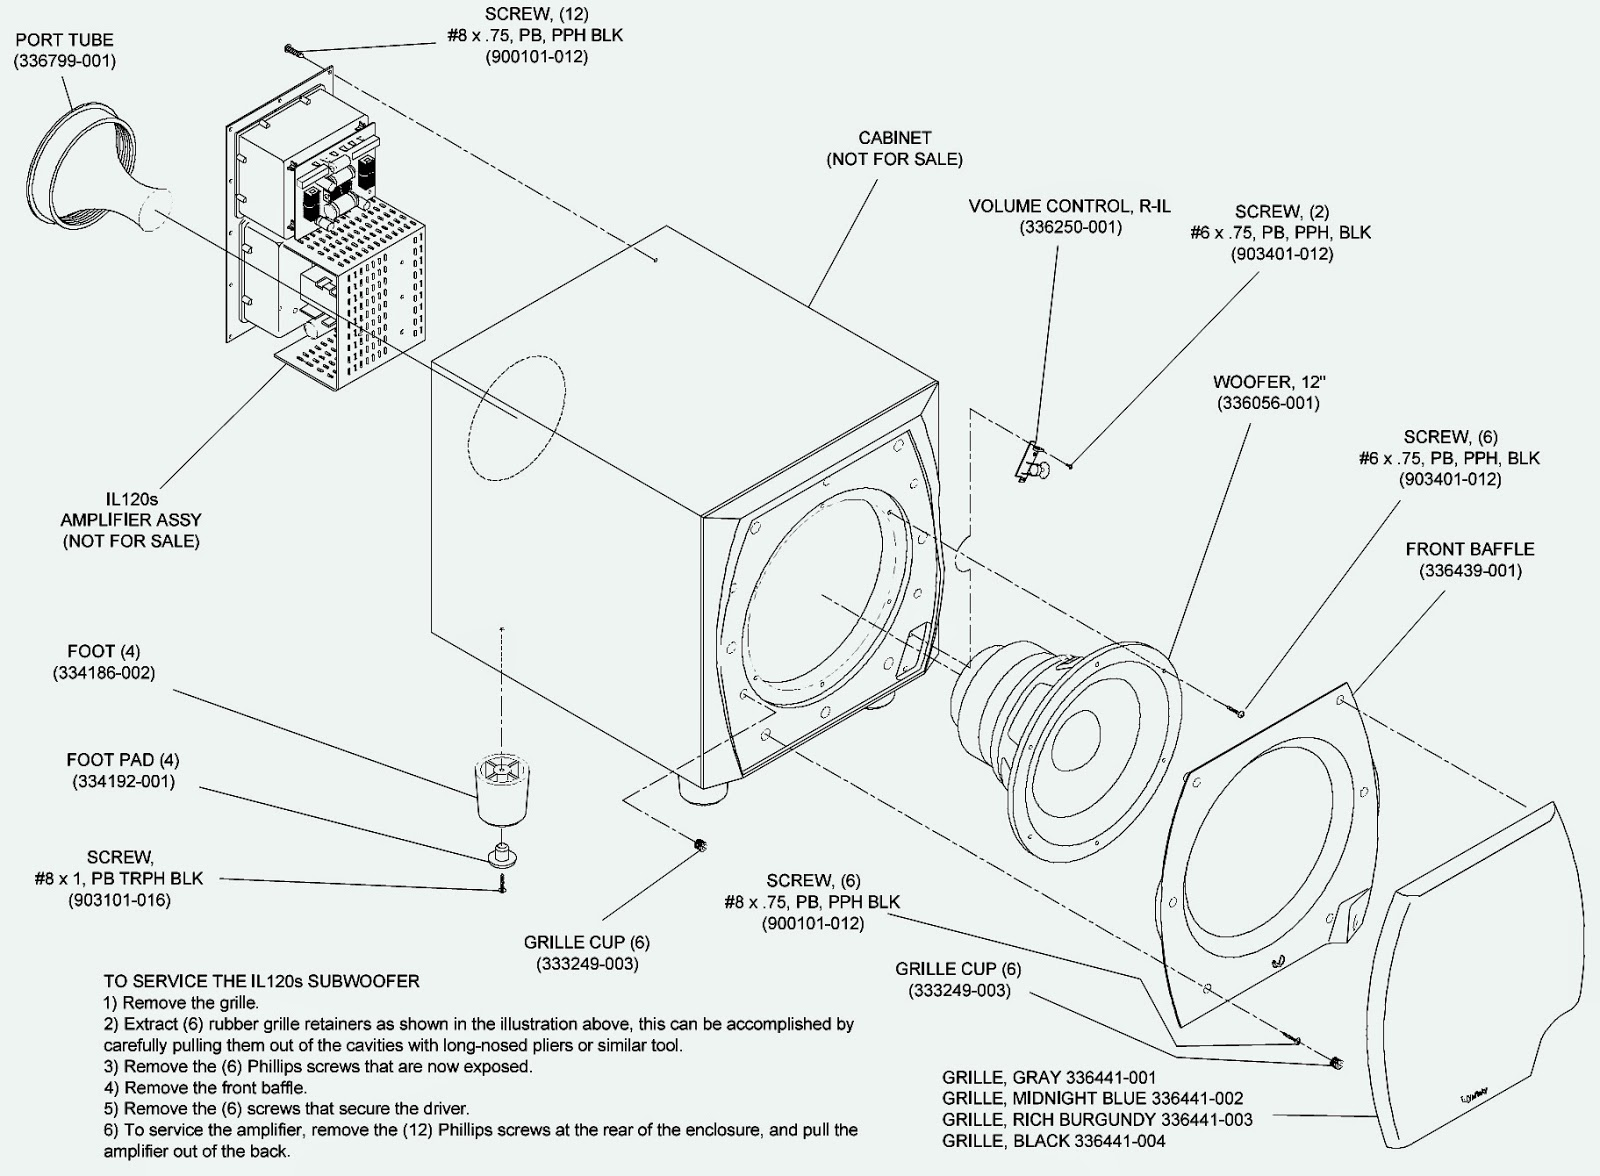 Infinity Il120s Sub Woofer